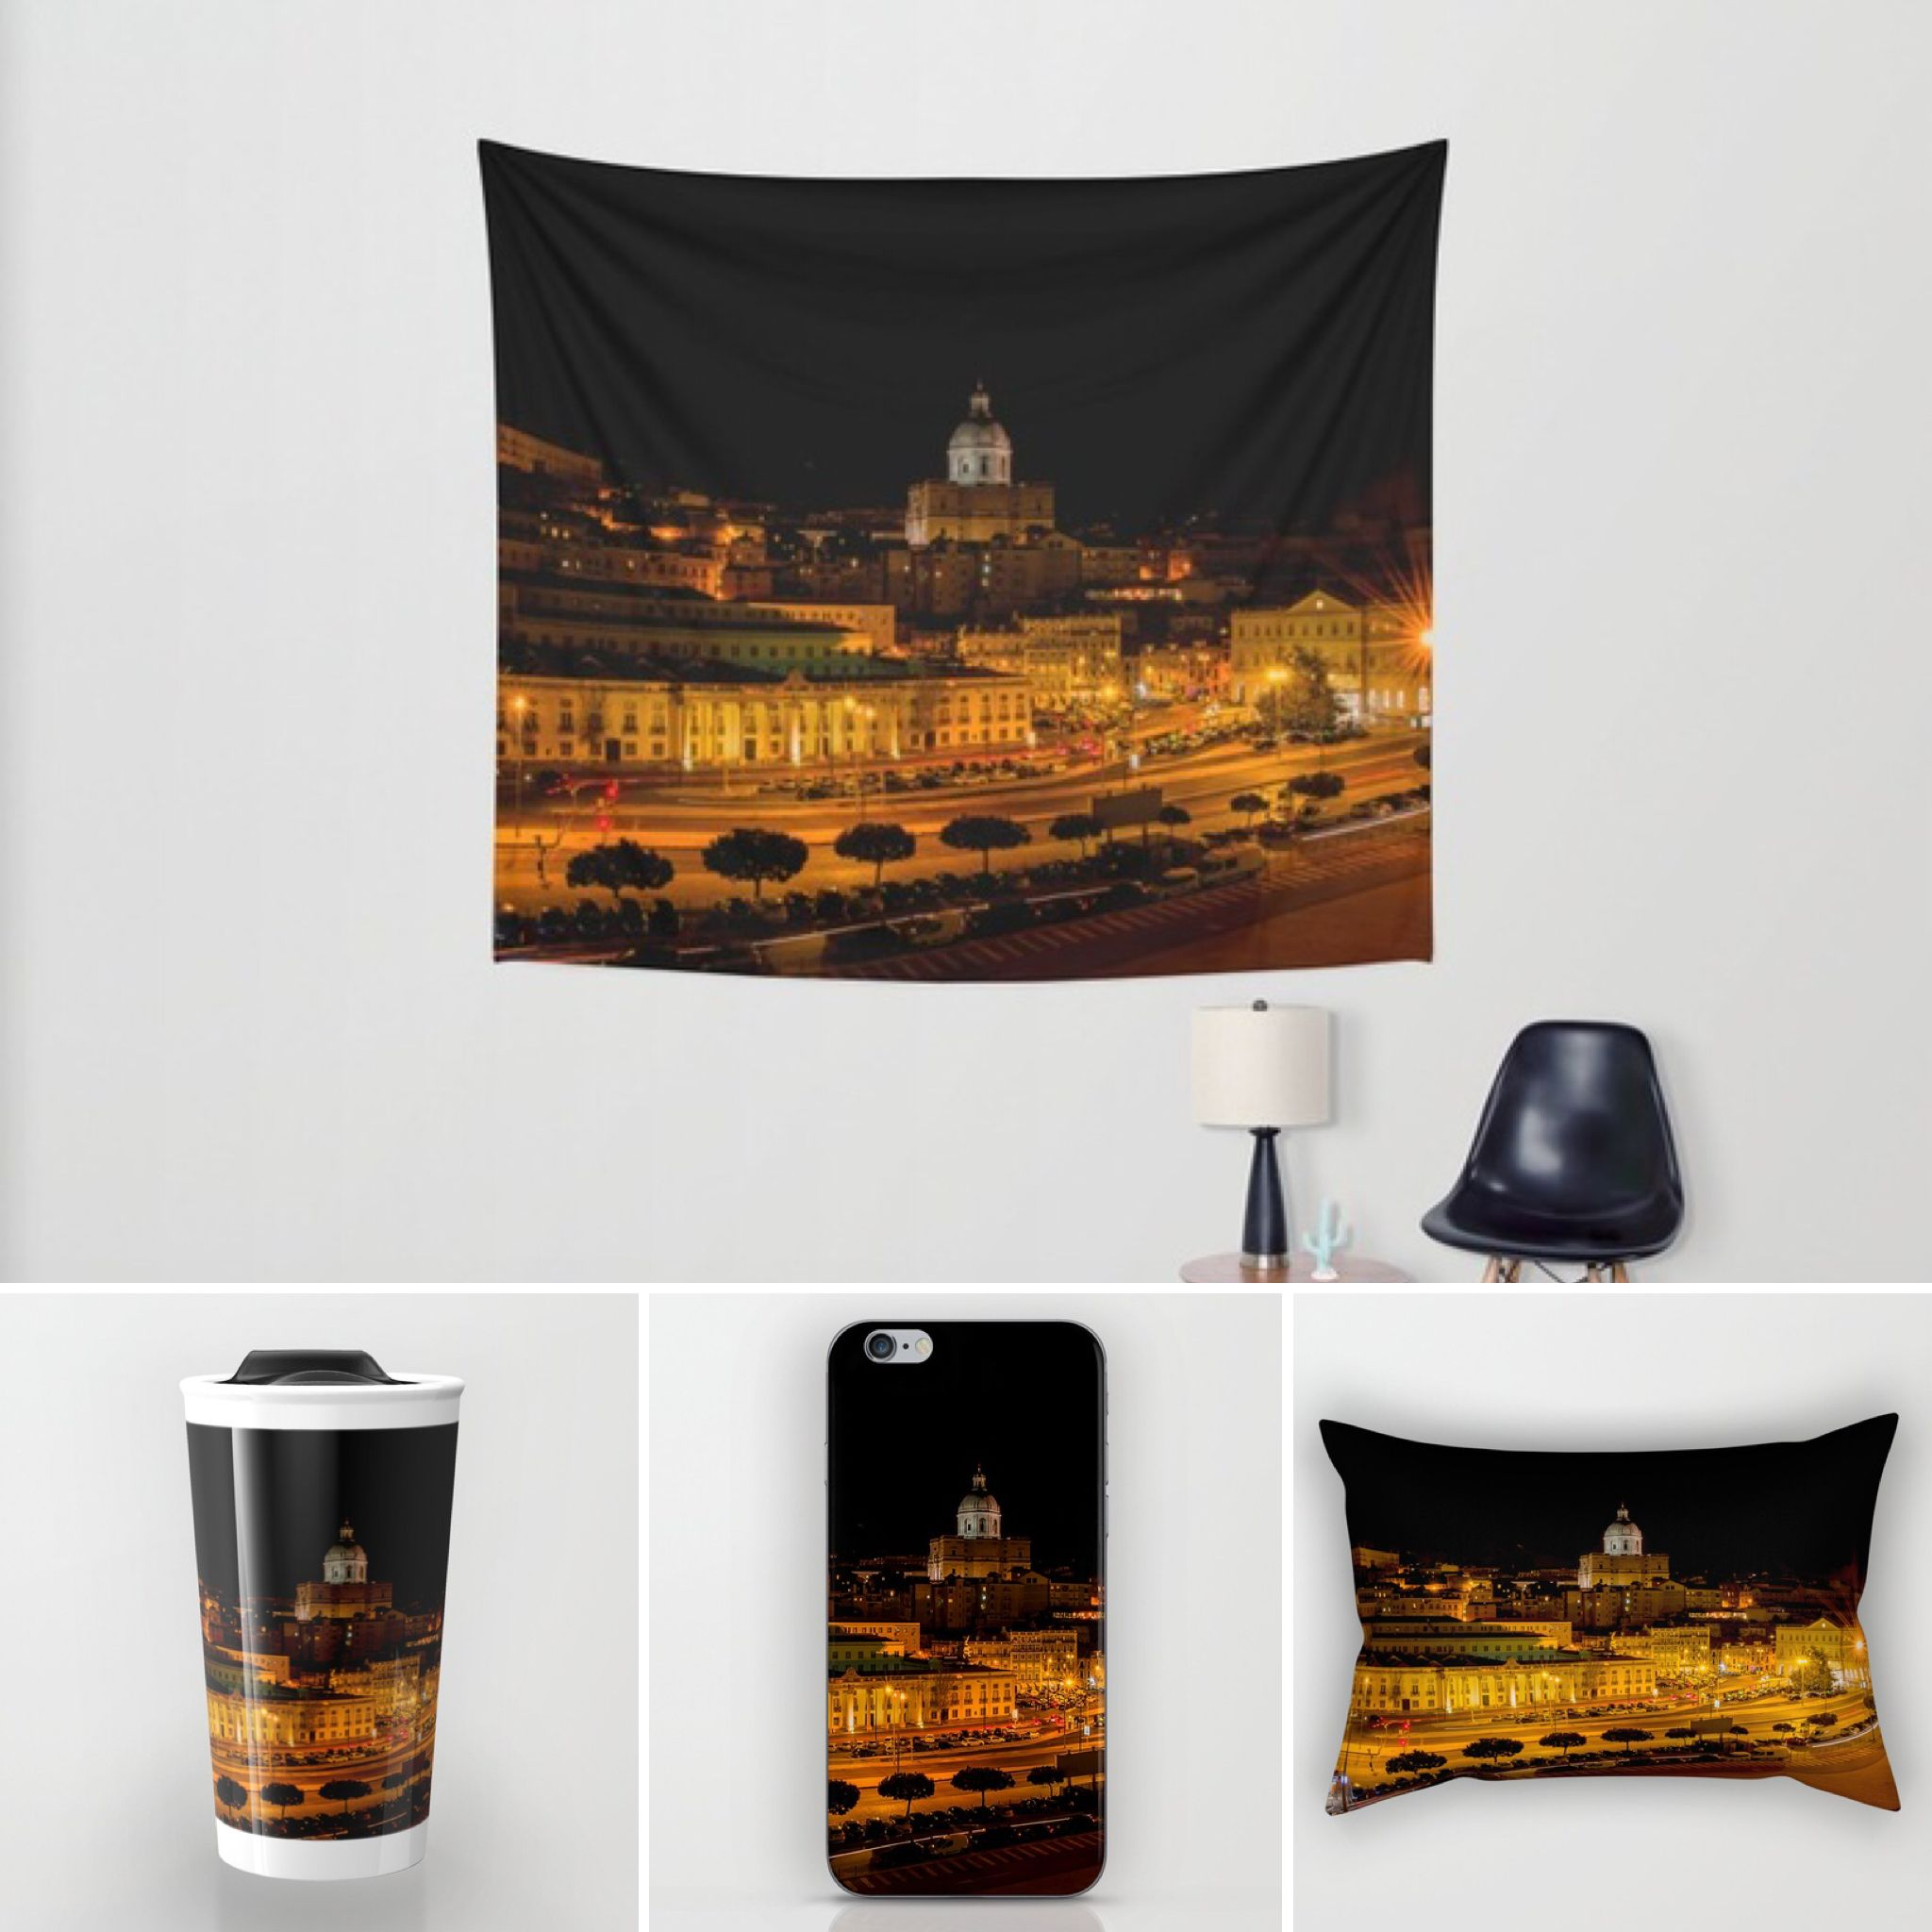 15% in Wall tapestrys and 20% on pillows off today .... 👉🏼https://society6.com/tanjariedel👈🏼 #interiorforyou #interiordesign #society6 #society6art #lisbon #lisboa #lissabon #nights #lighting #light #city #cityscape #citytrip #europetrip #europe #sales #buy #todayshopping #shopping #shoppingday #sundays #tanjariedel